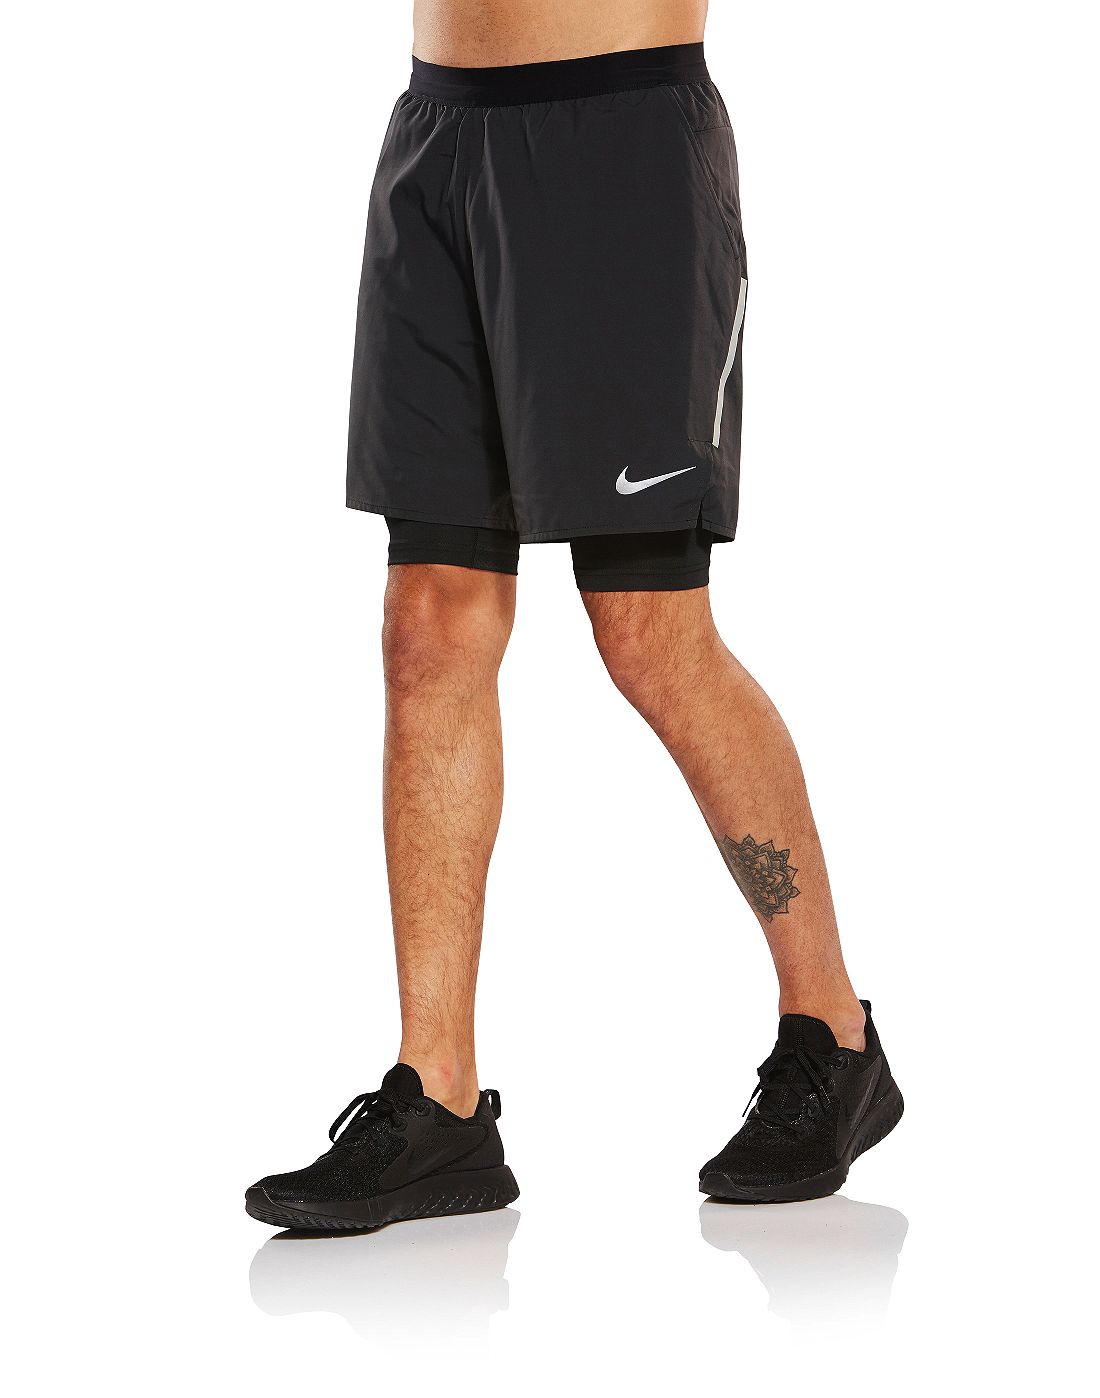 5be99353875a9 Men's Nike Flex Distance 2 in 1 Shorts | Black | Life Style Sports